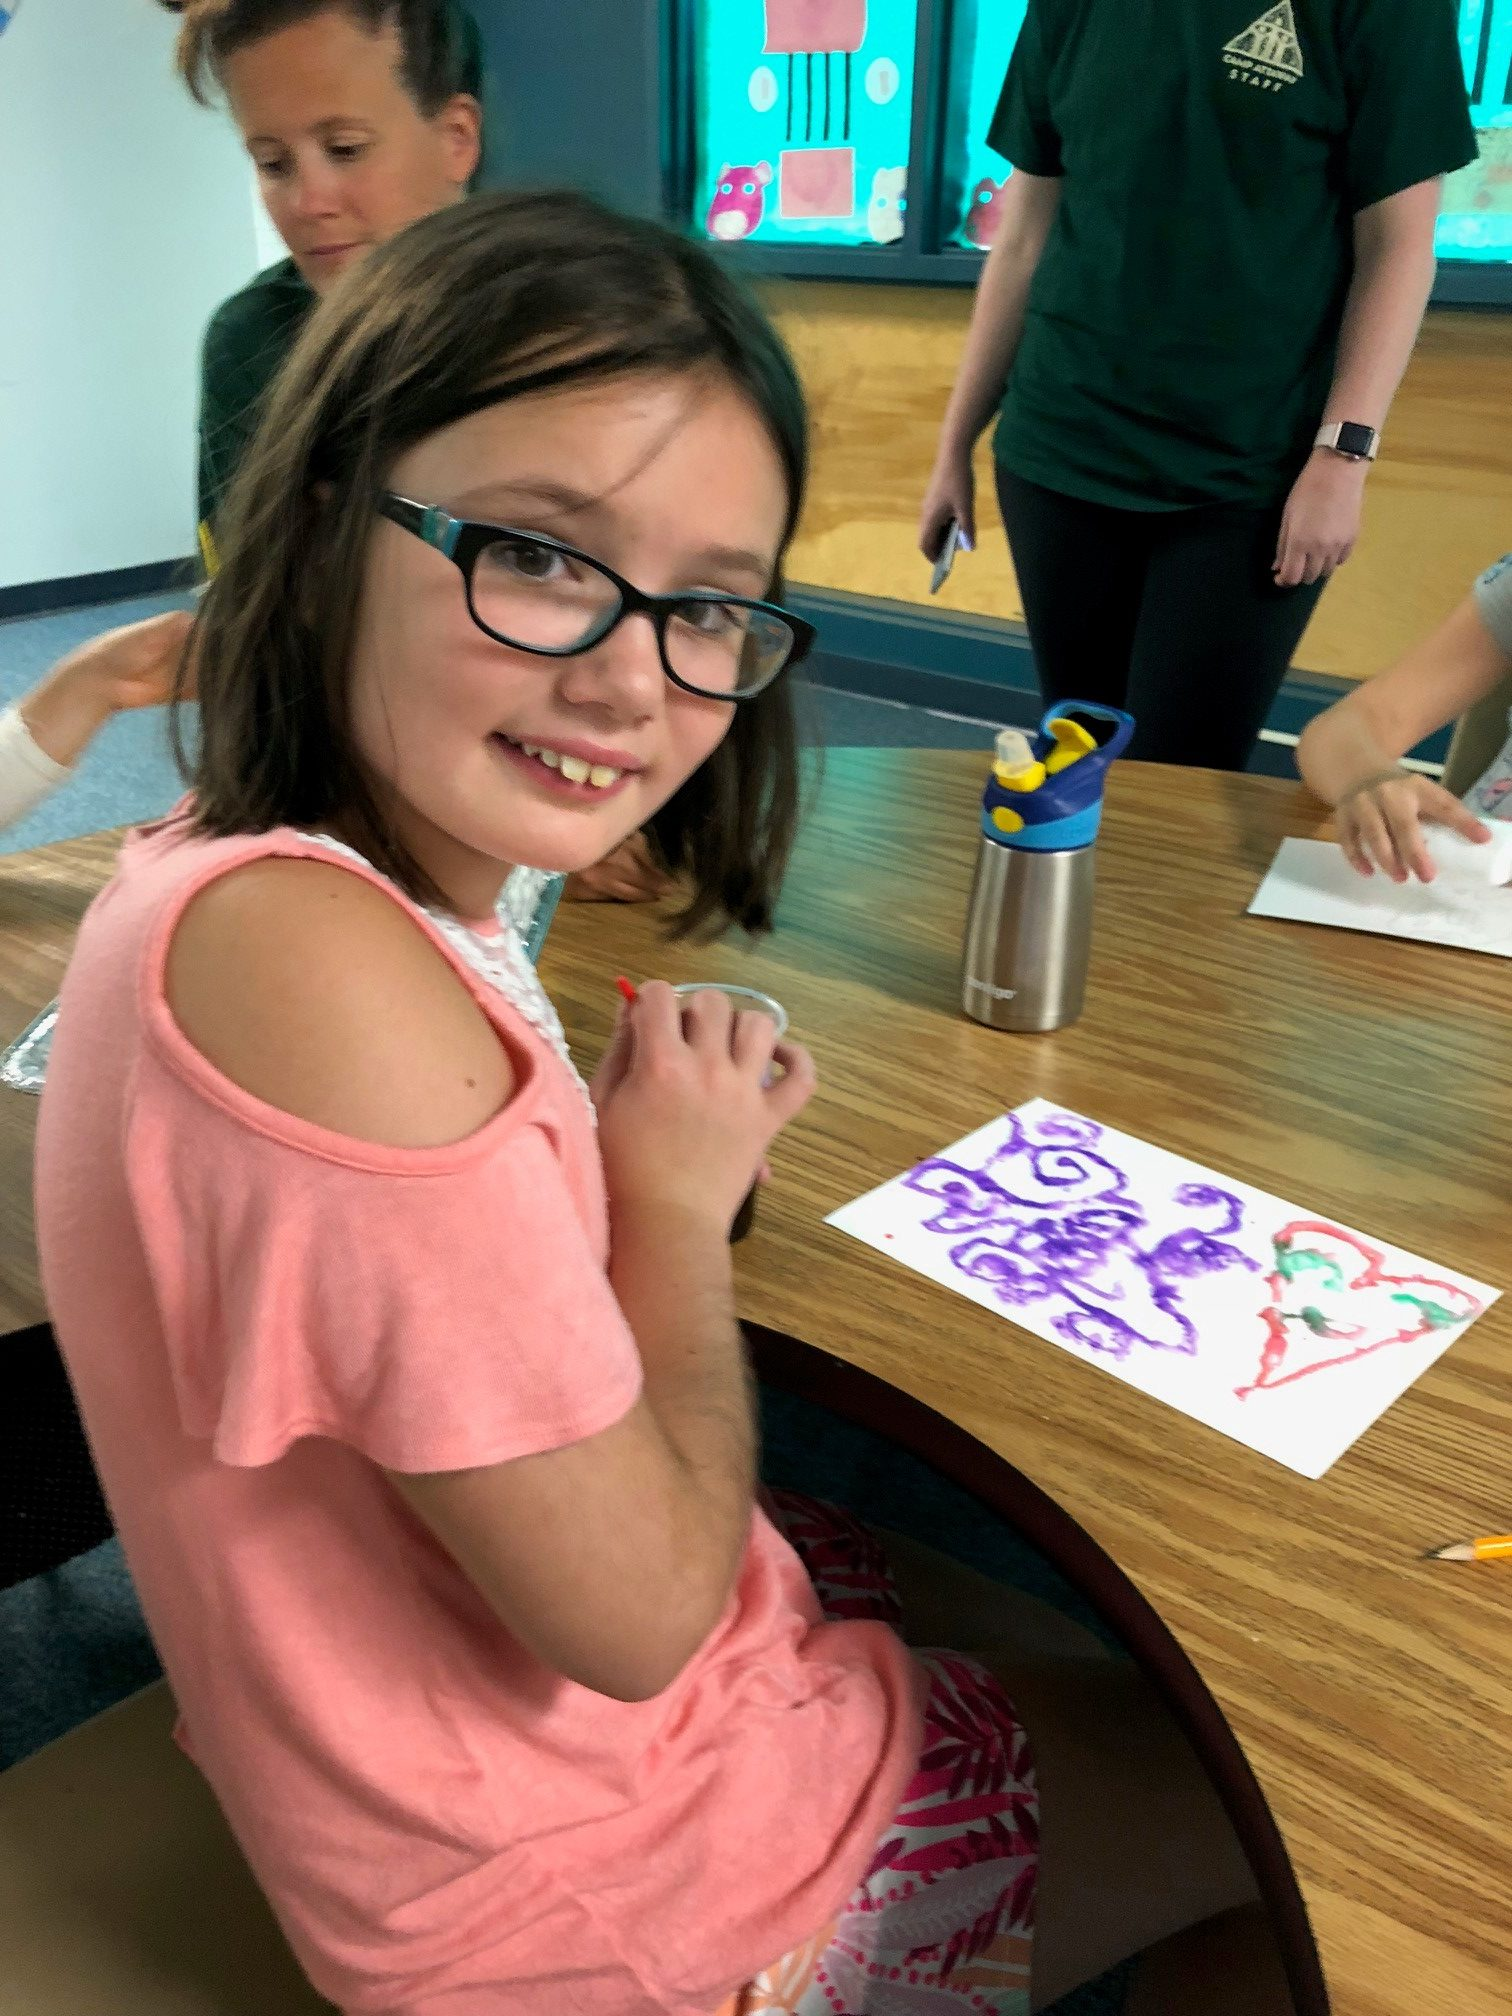 a girl in glasses shows off her art